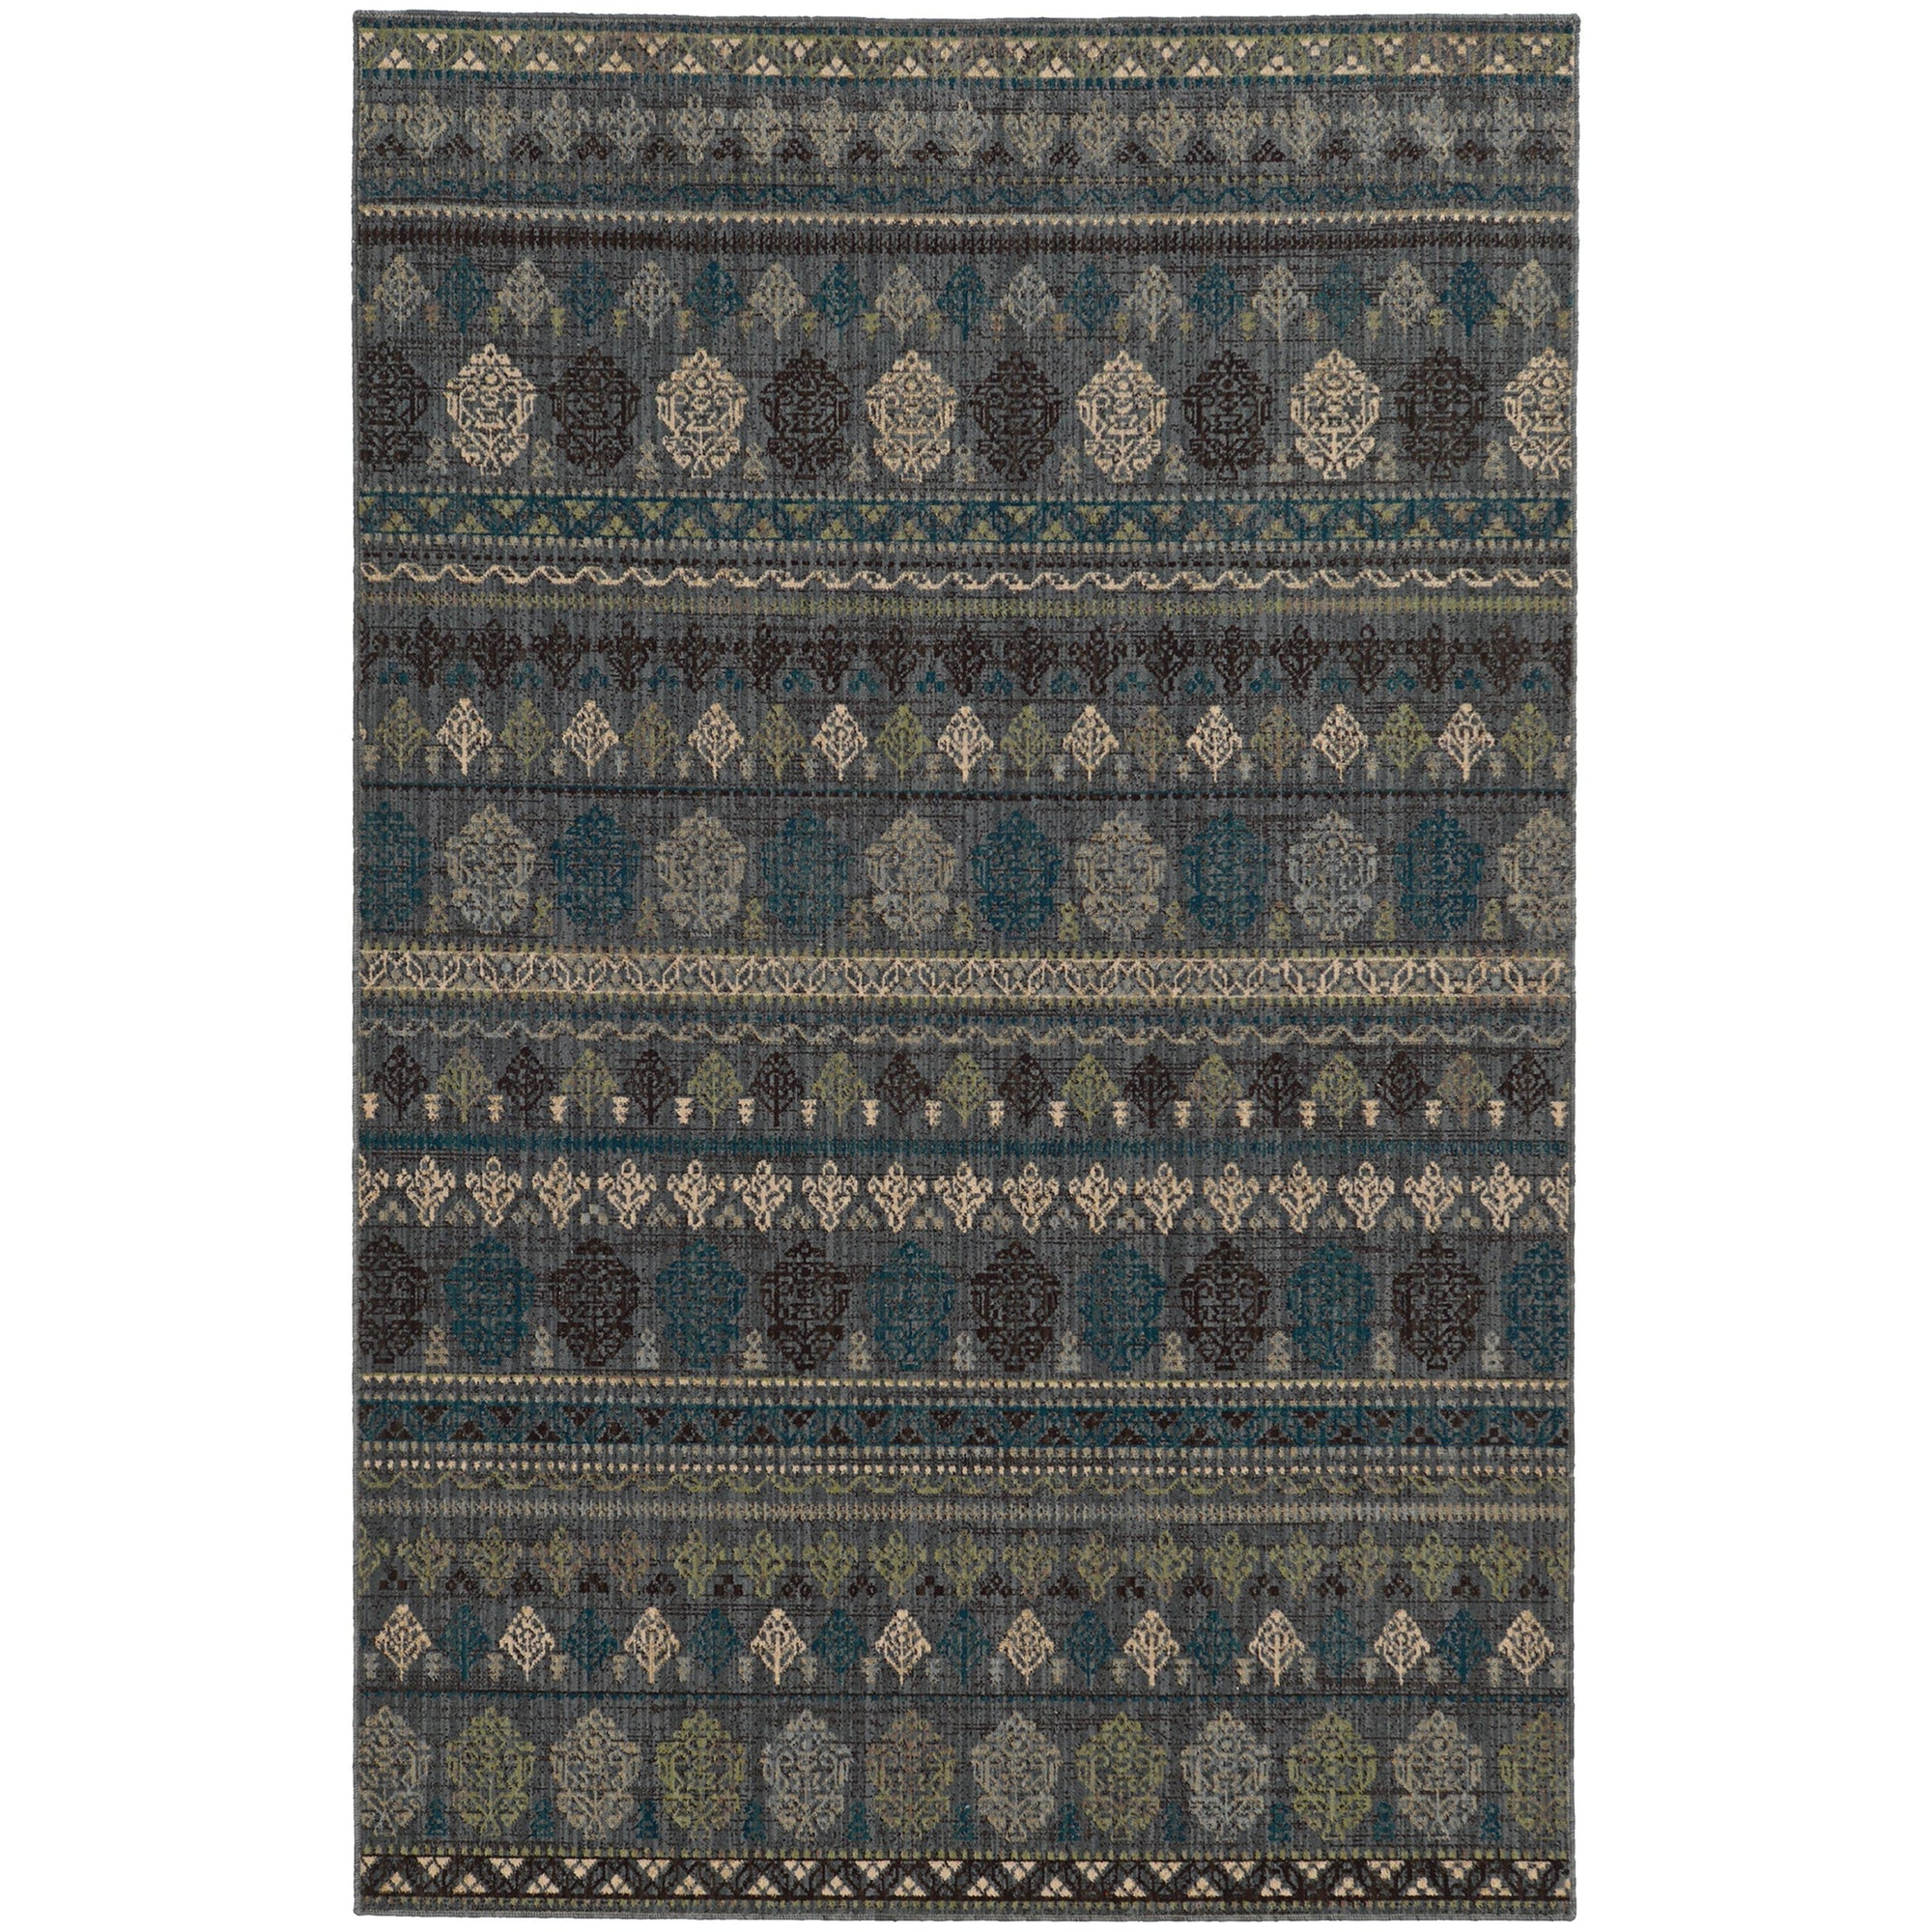 "Tommy Bahama Home Vintage 591e Blue/Blue-Area Rug-Tommy Bahama Home-1'10"" X 3' 3""-The Rug Truck"